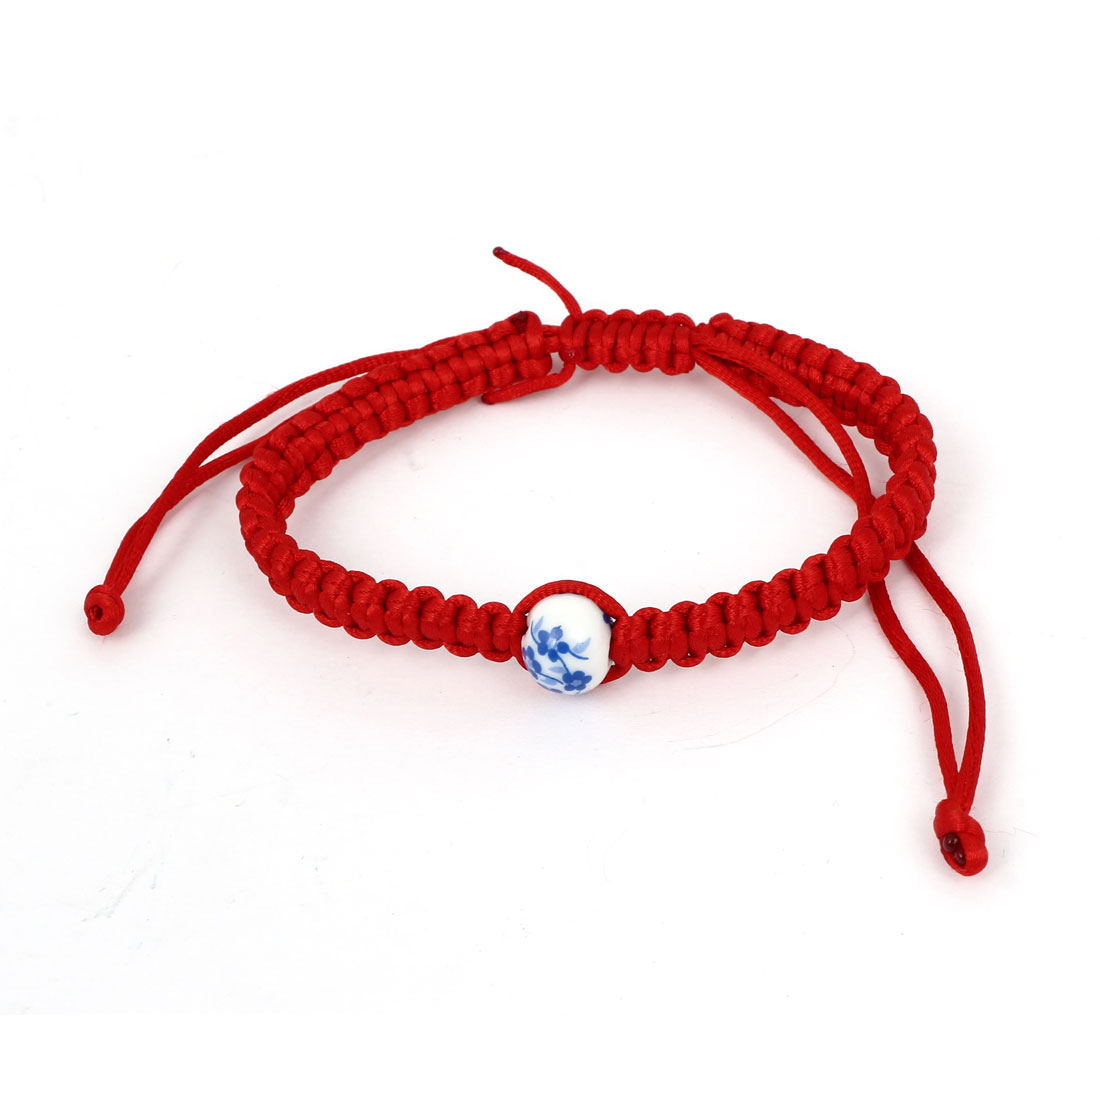 Adjustable Knotted Braided Hand Rope Cord Blue Porcelain Hand Bracelet